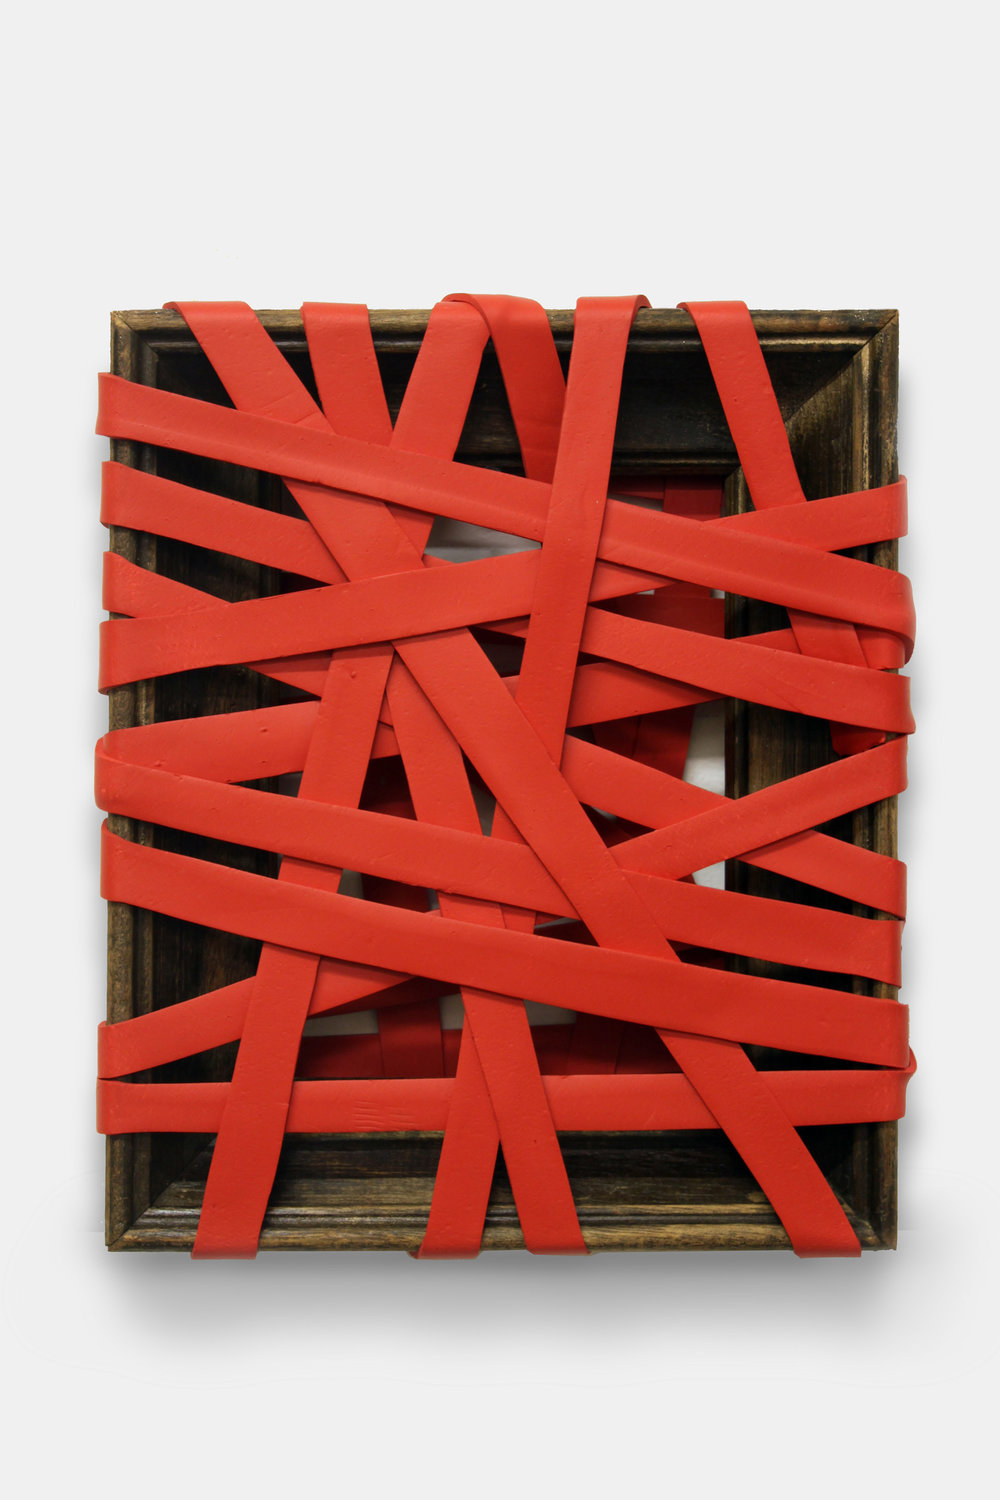 Bound (Red)  , 2013  Acrylic and wooden frame  30 x 23 x 5 cm